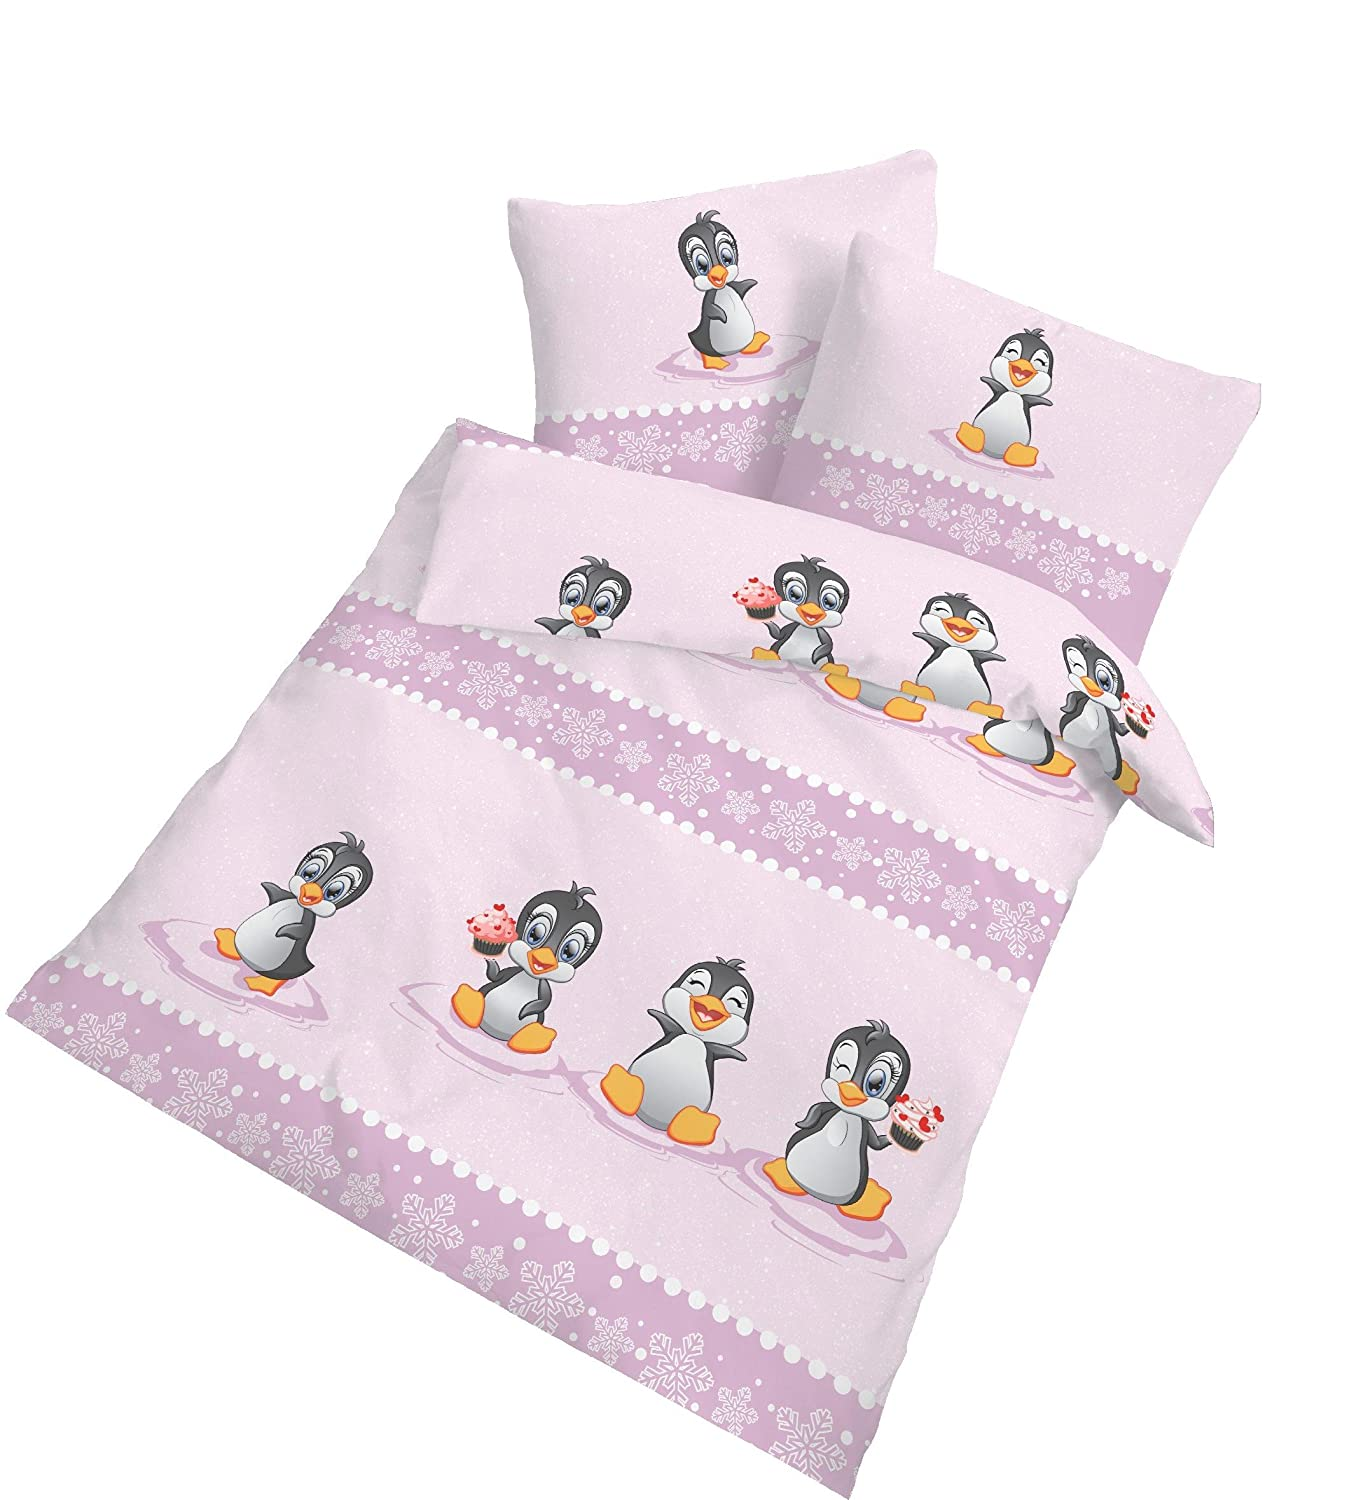 'Soft Flannel Baby Girls Bed Linen Plitsch Platsch Pinguin Penguin Winter Fun in Pink 100% Cotton – 40 x 60 + 100 x 135 cm Made in Germany Ido Dobnig